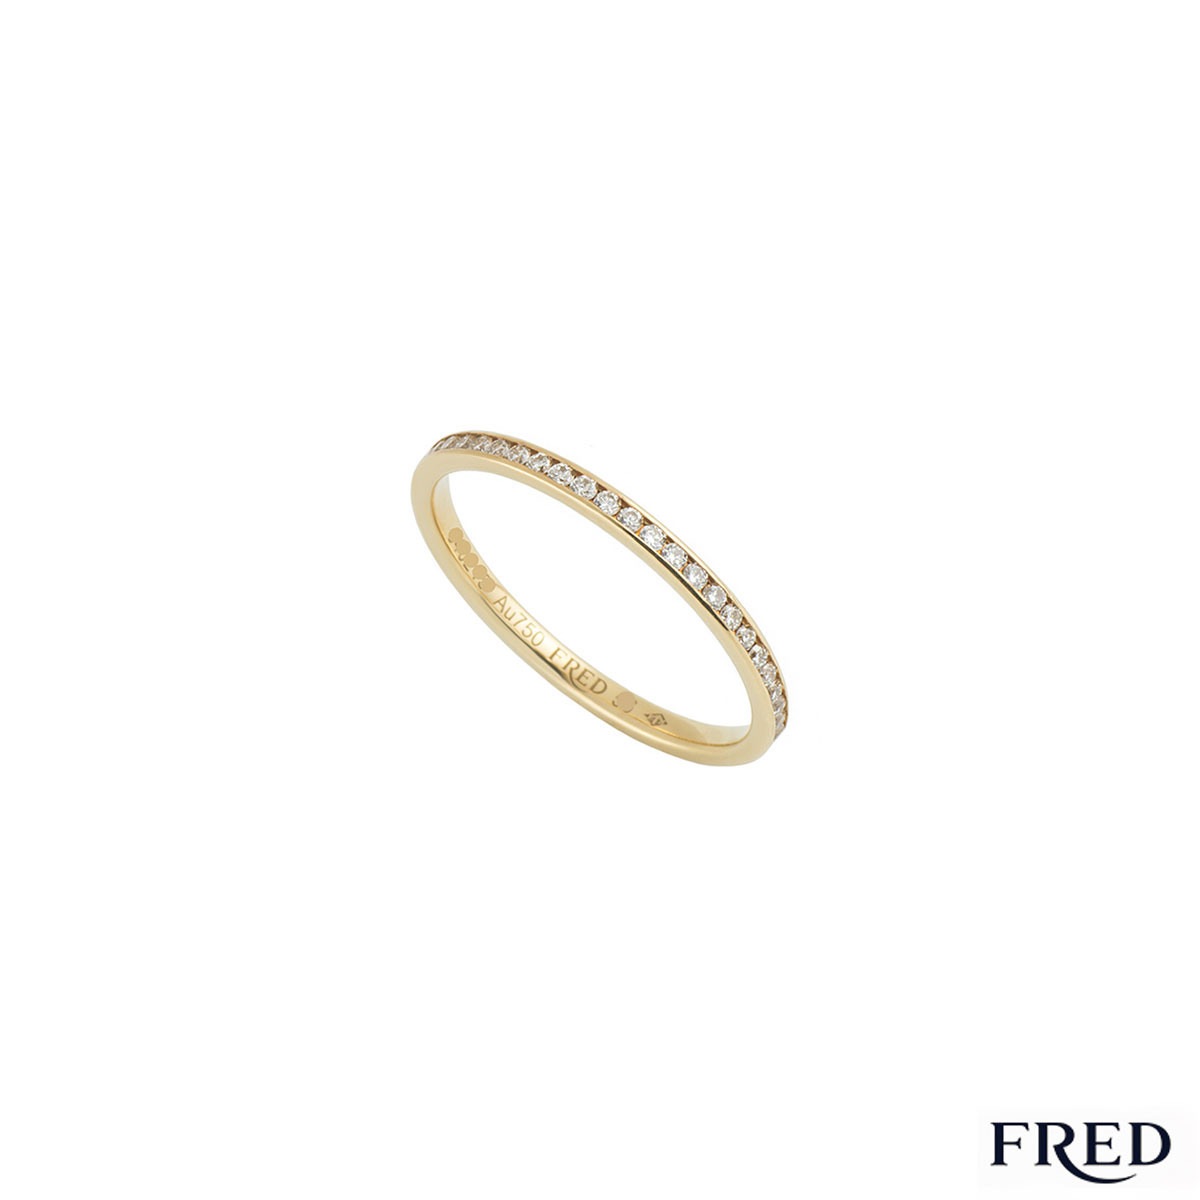 Fred Yellow Gold Full Diamond Eternity Ring 0.32ct G+/VS+